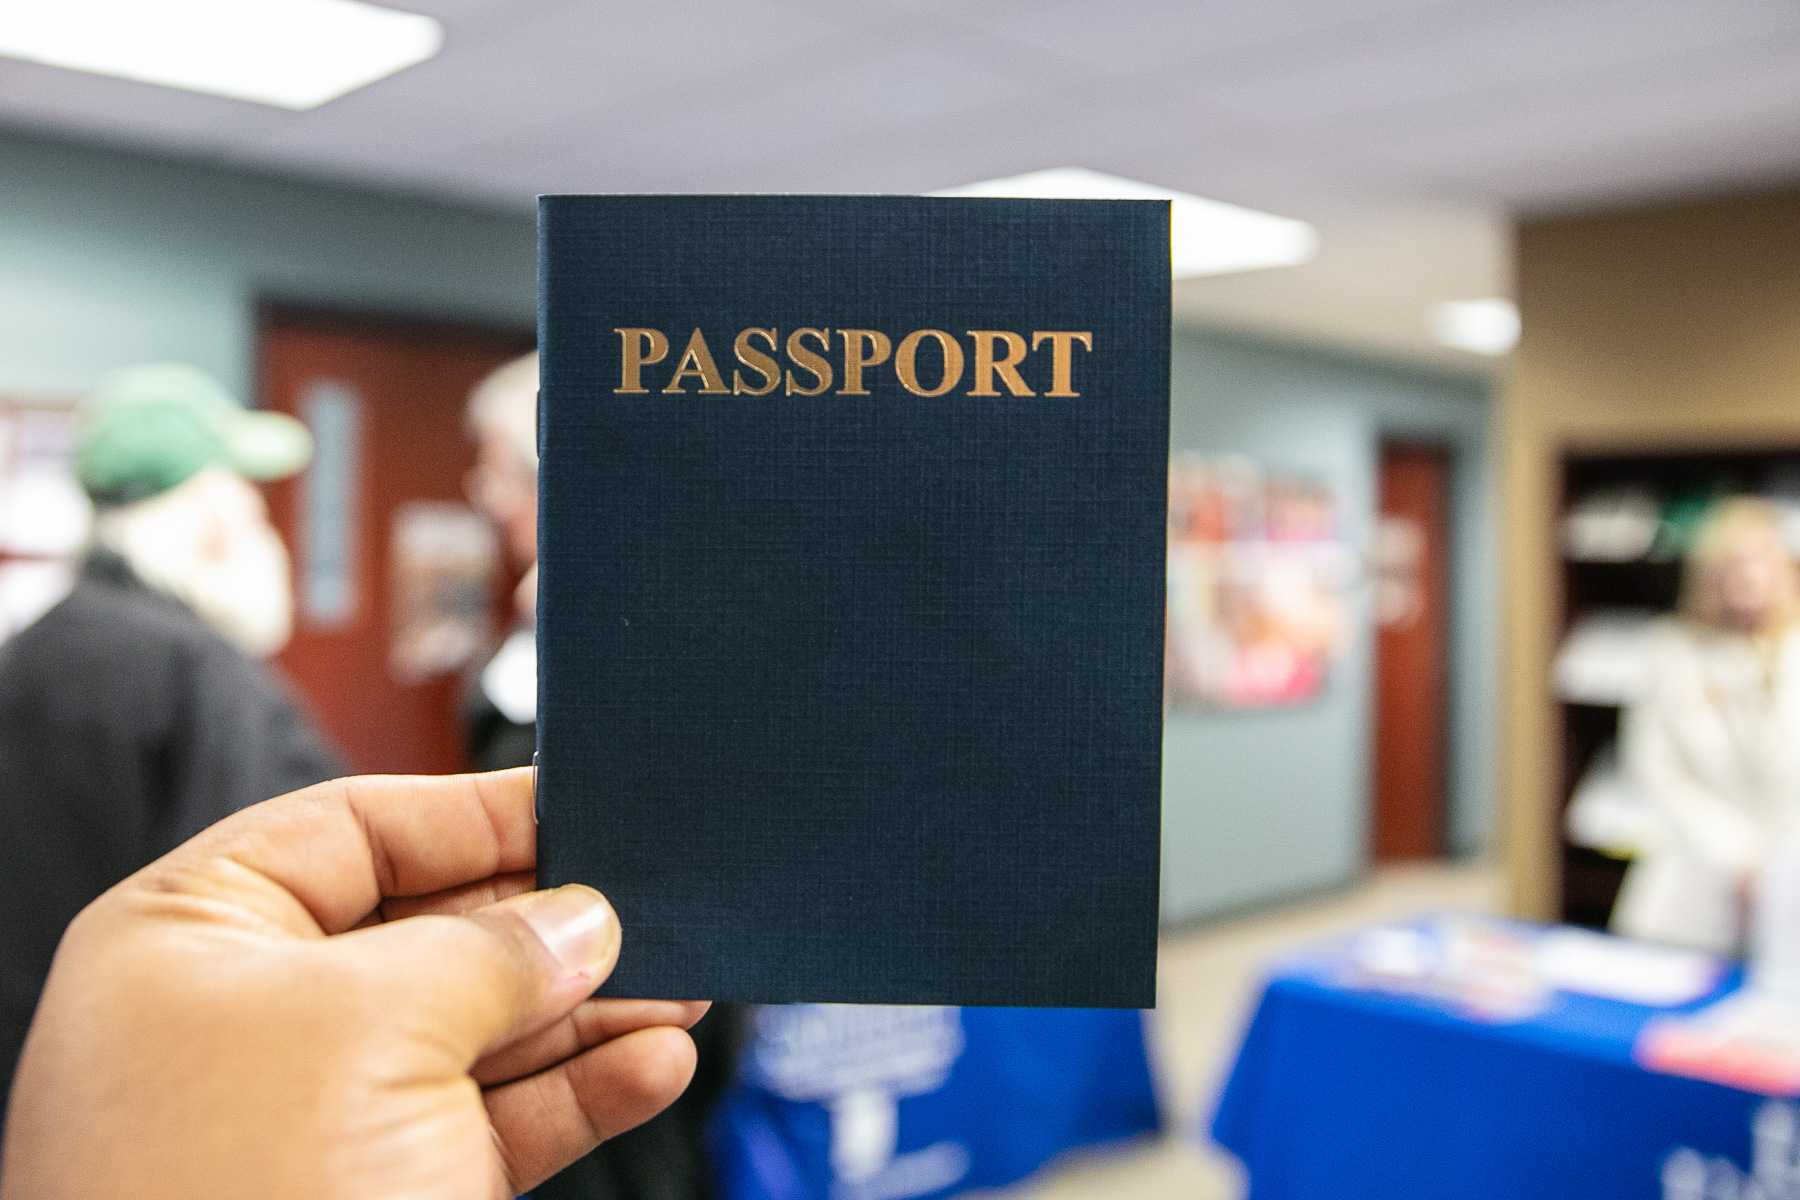 Attendees received a passport, indicating that they have completed learning about resources provided at the School of Continuing and Professional Studies. Participants received a reward after their visit. (DePaul University/Randall Spriggs)